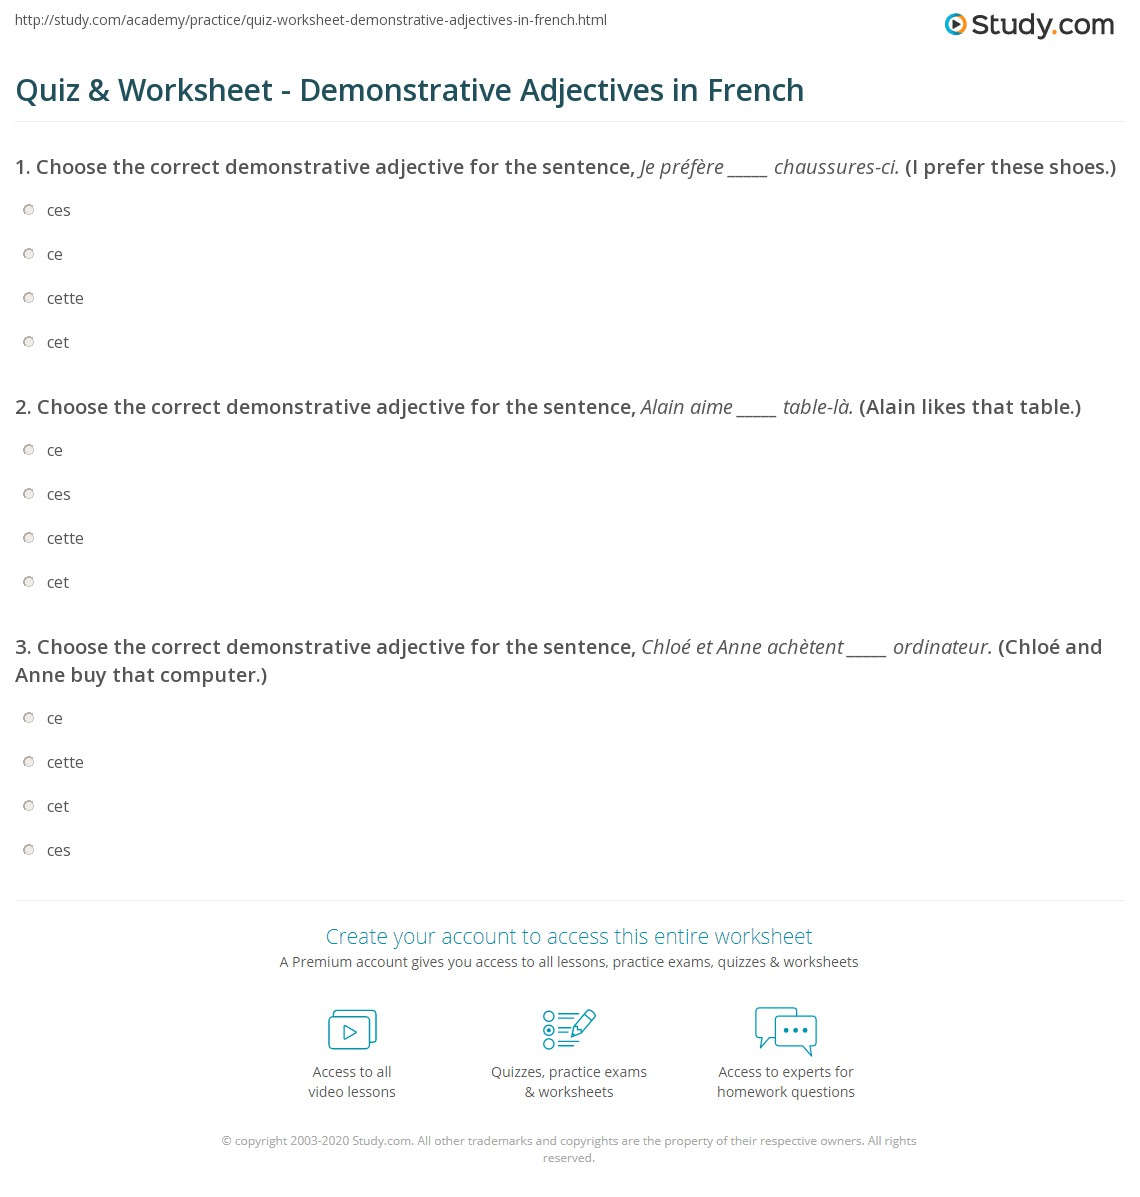 quiz worksheet demonstrative adjectives in french. Black Bedroom Furniture Sets. Home Design Ideas